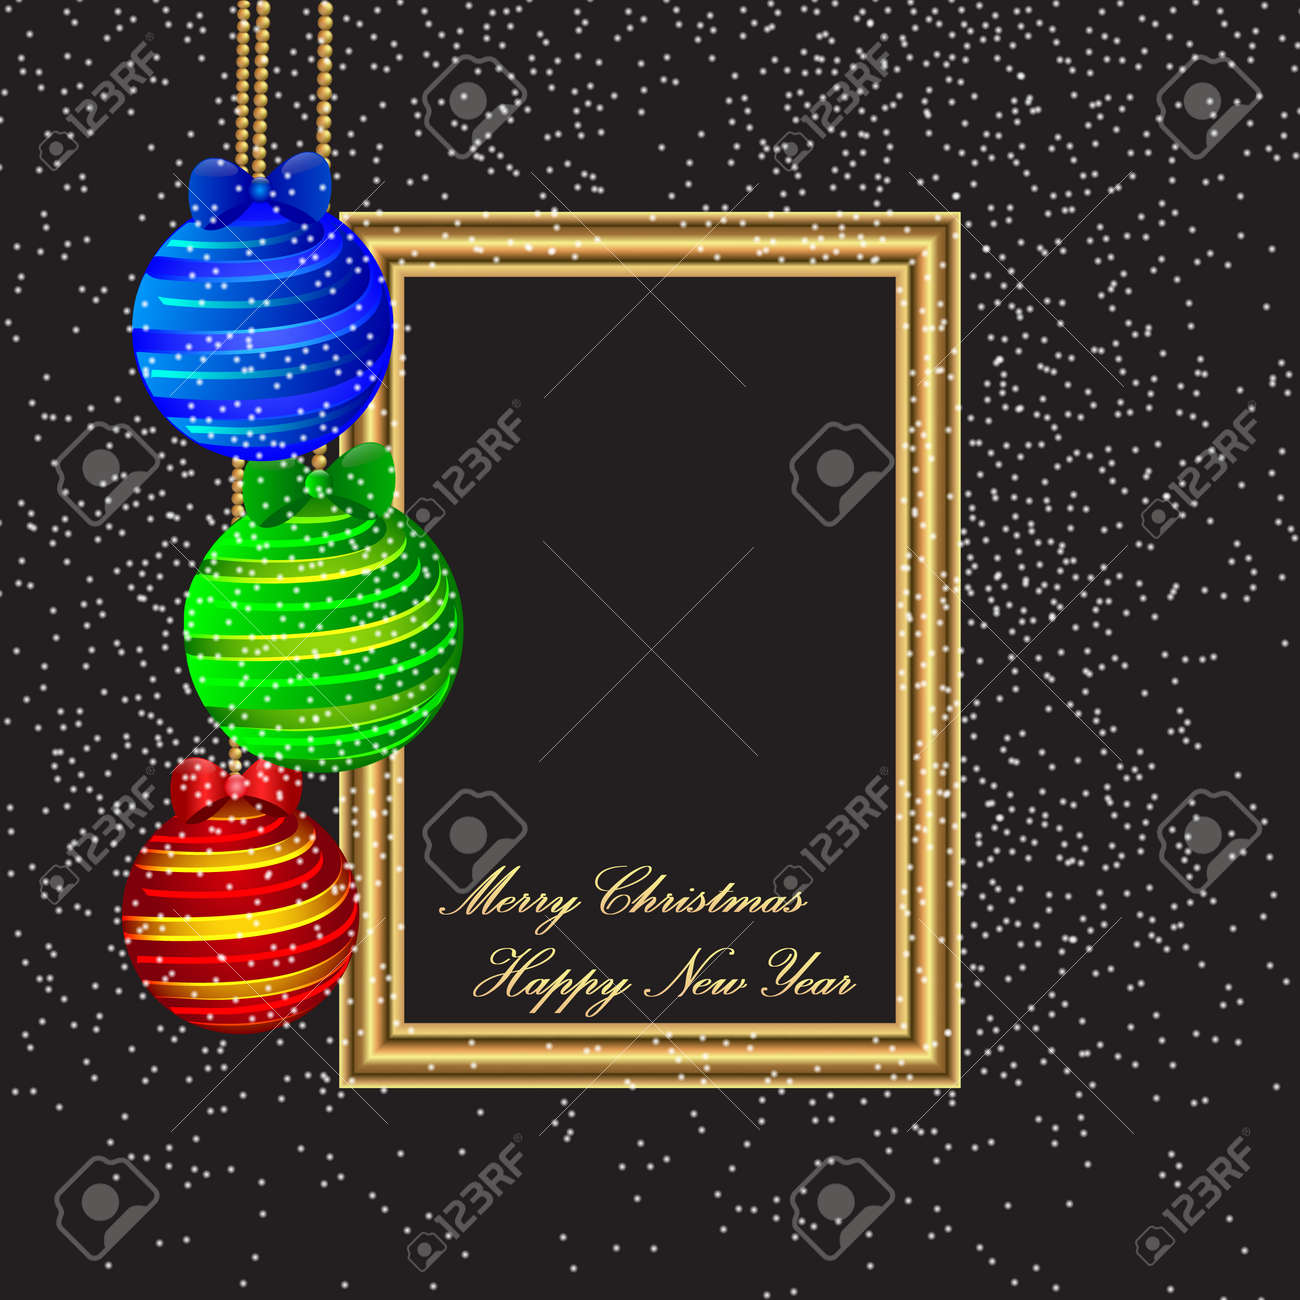 Merry Christmas And Happy New Year Poster Template With Color Balls On  Black Background. Vector